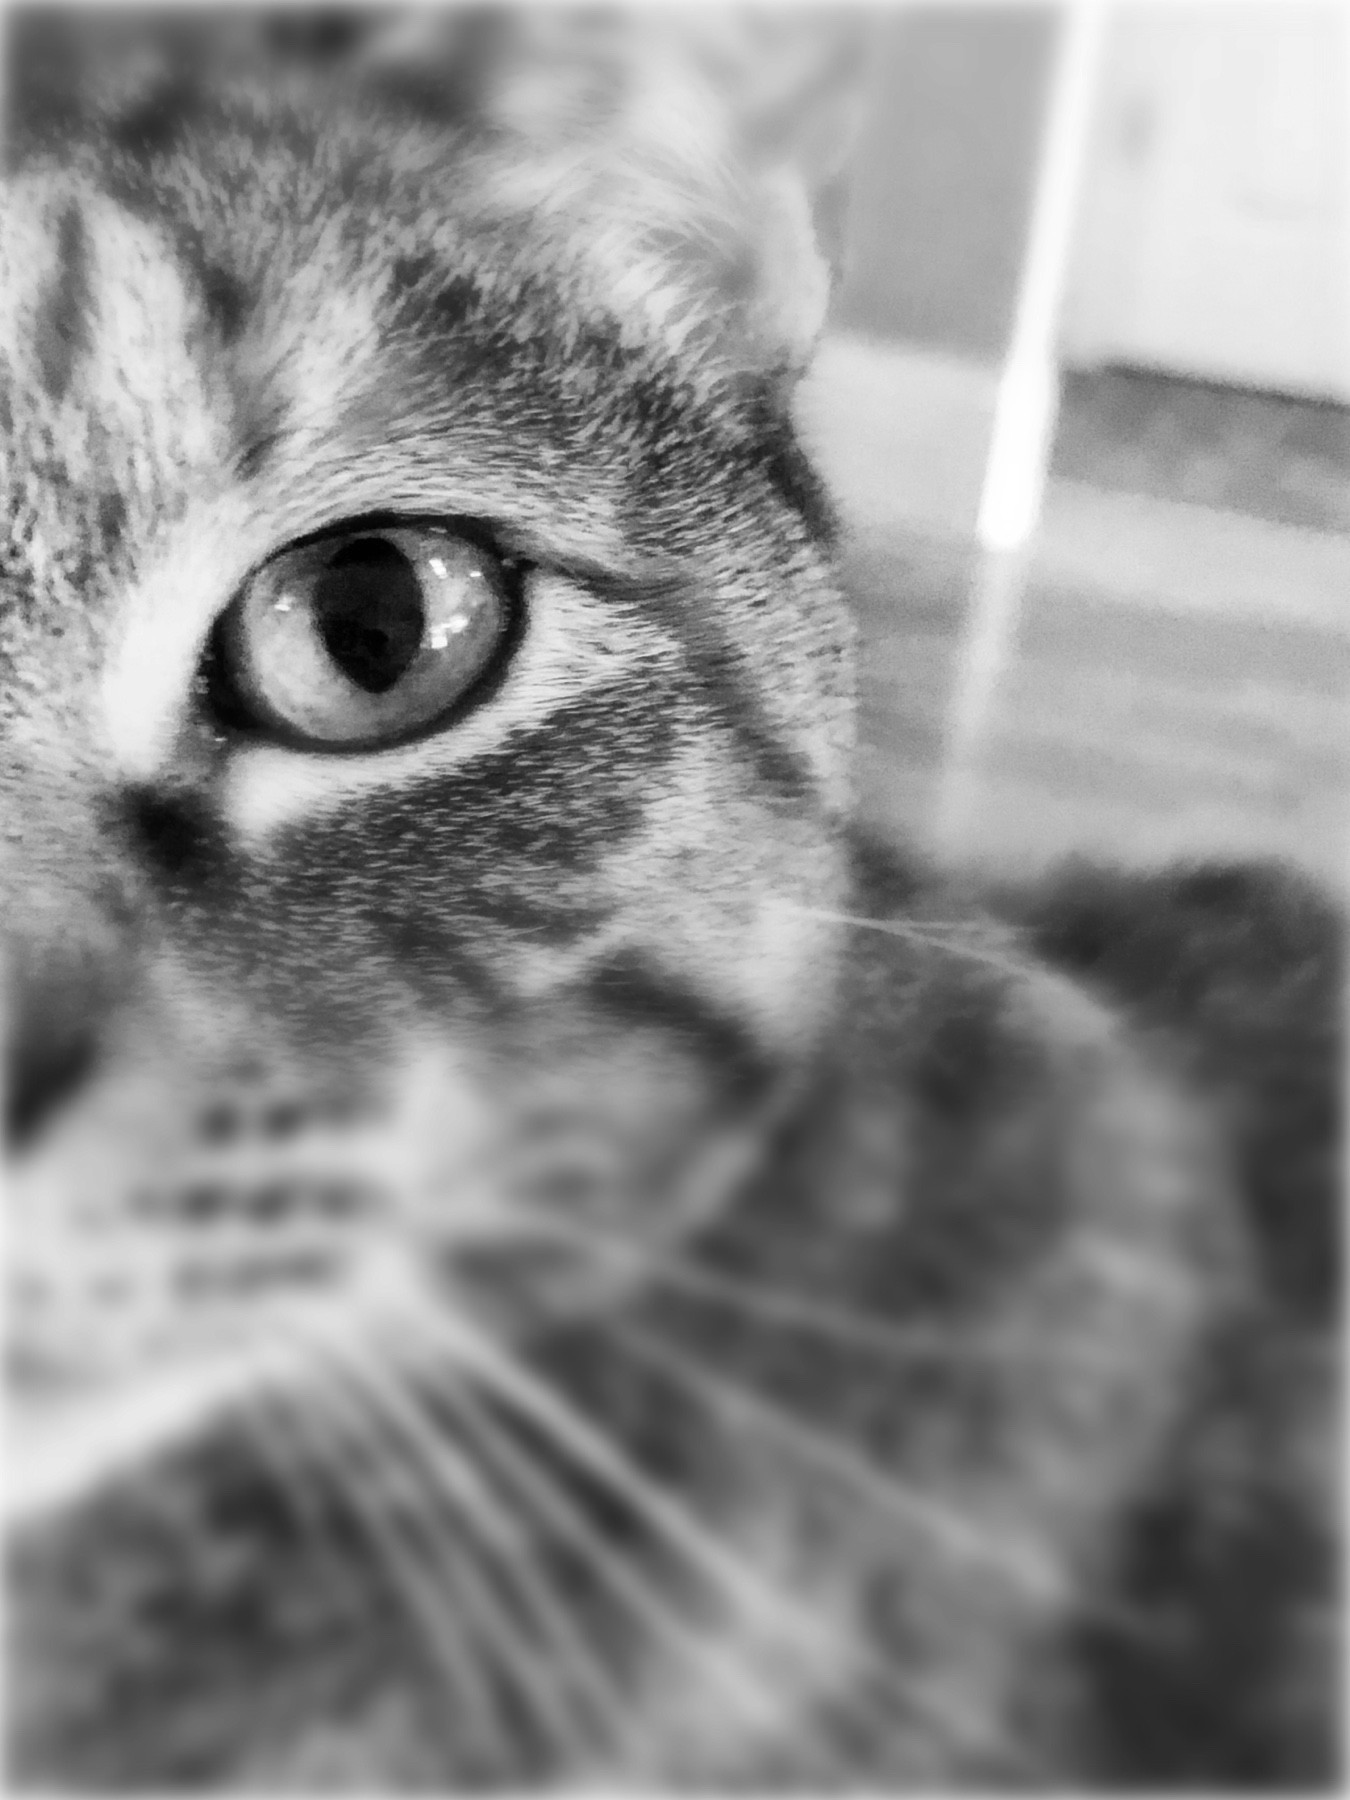 An up close shot of a cat's left eye as it faces directly into the camera.  The background is blurred.